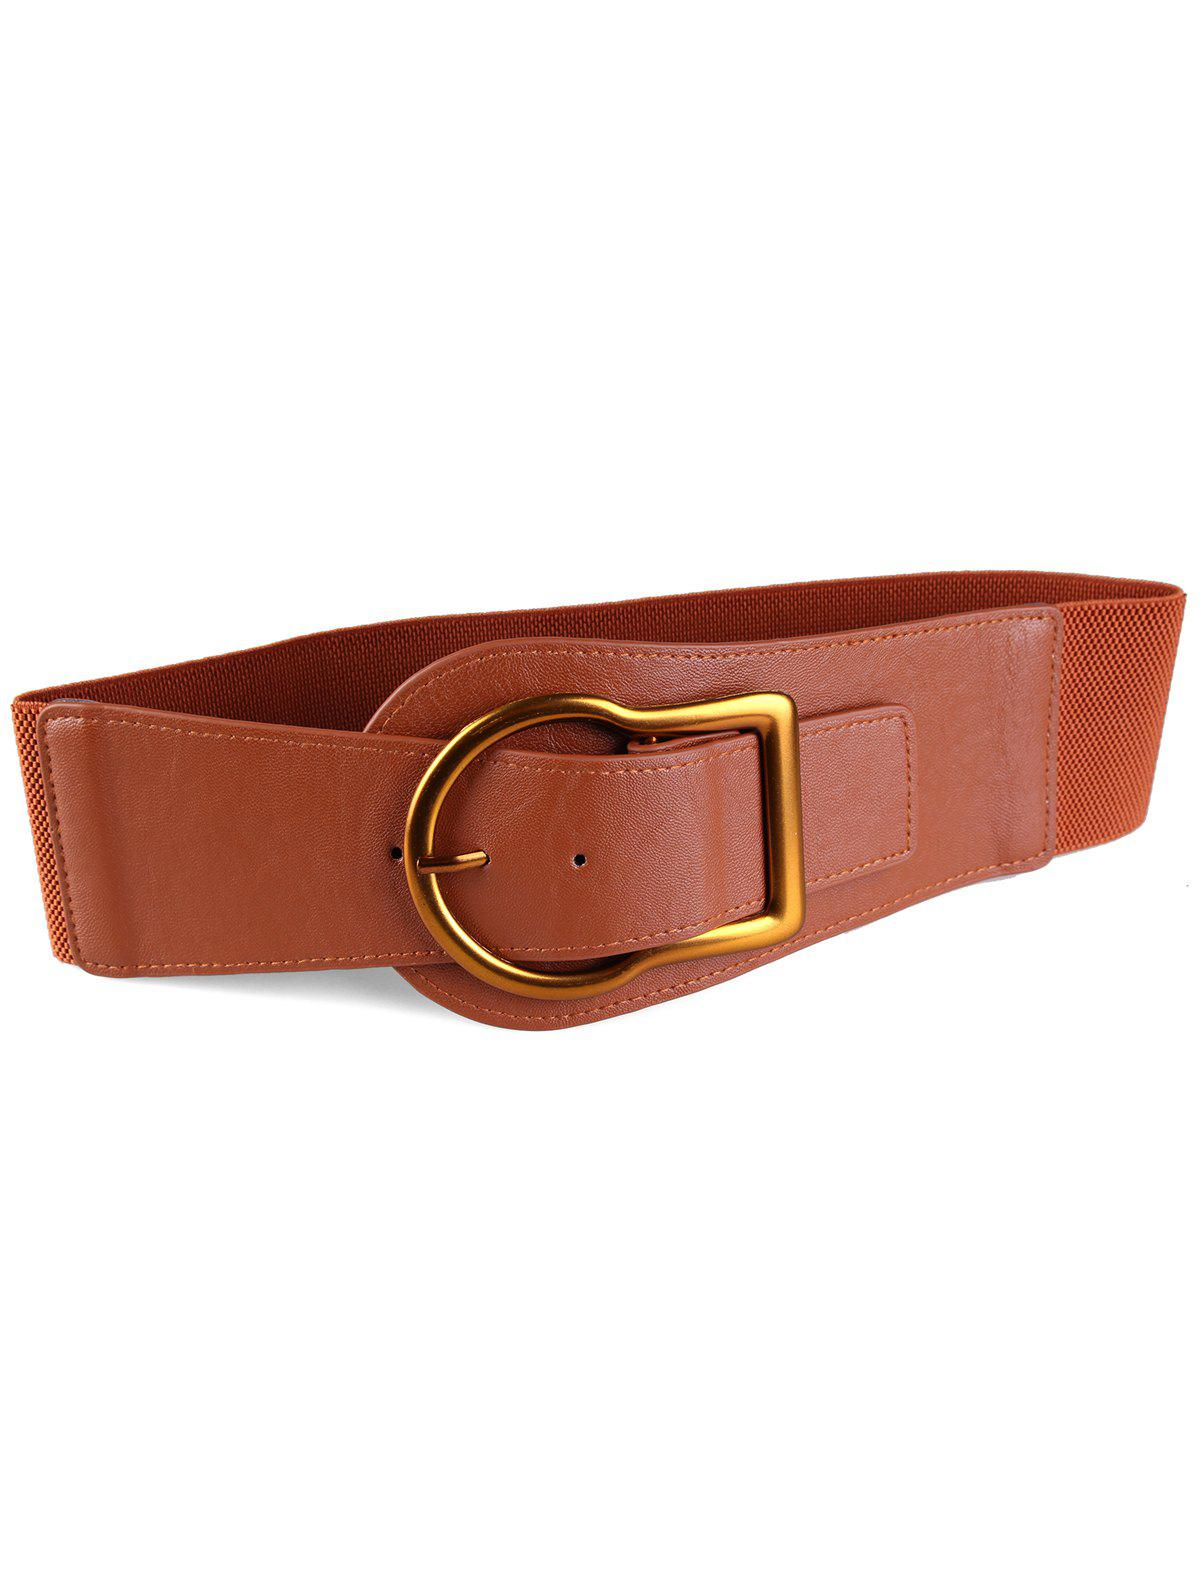 Fashion Retro Gold Metal Buckle Faux Leather Wide Waist Belt